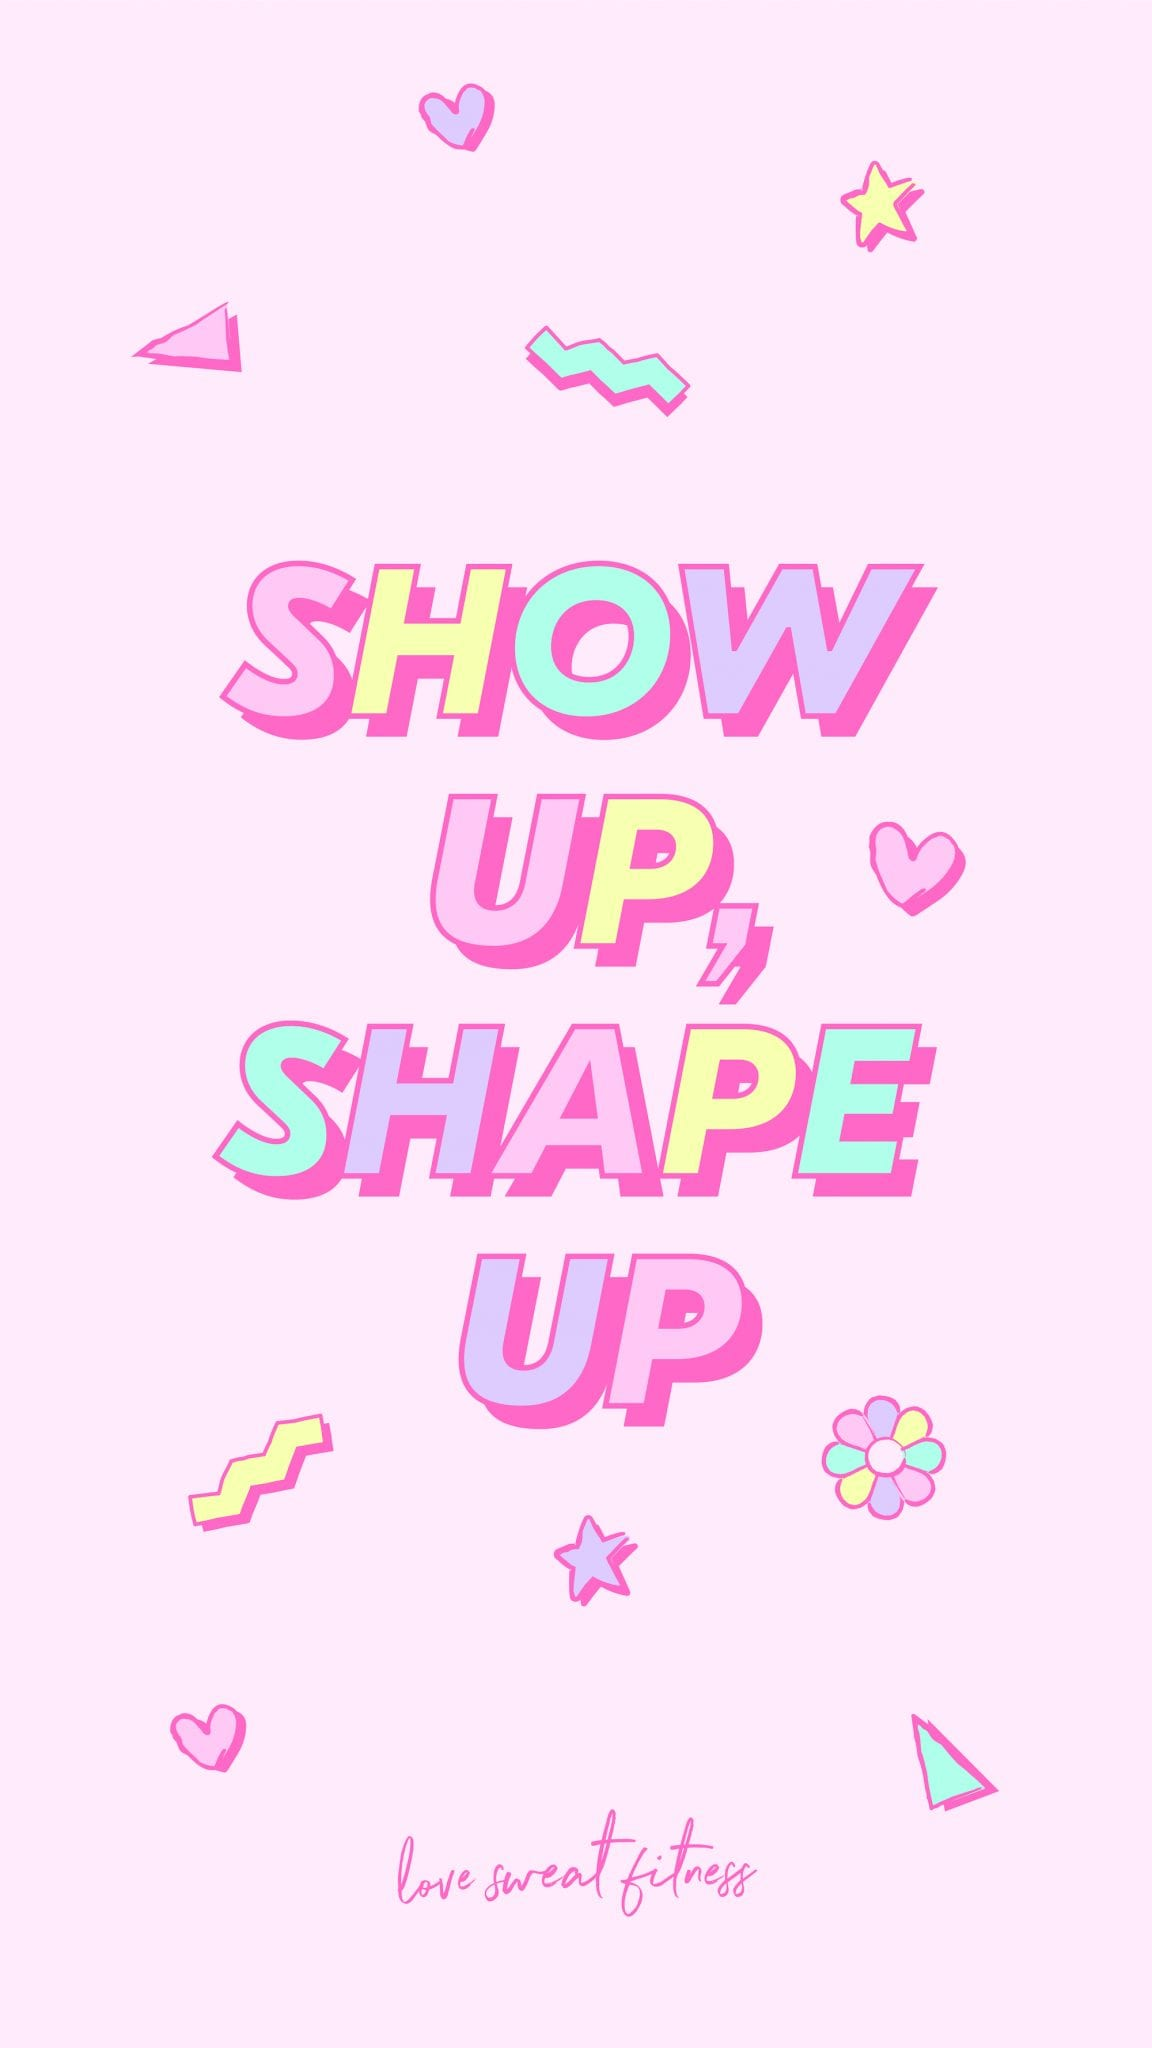 Stay Motivated With This Cute Phone Background For The Summer Shape Up Free 8 Week Challenge